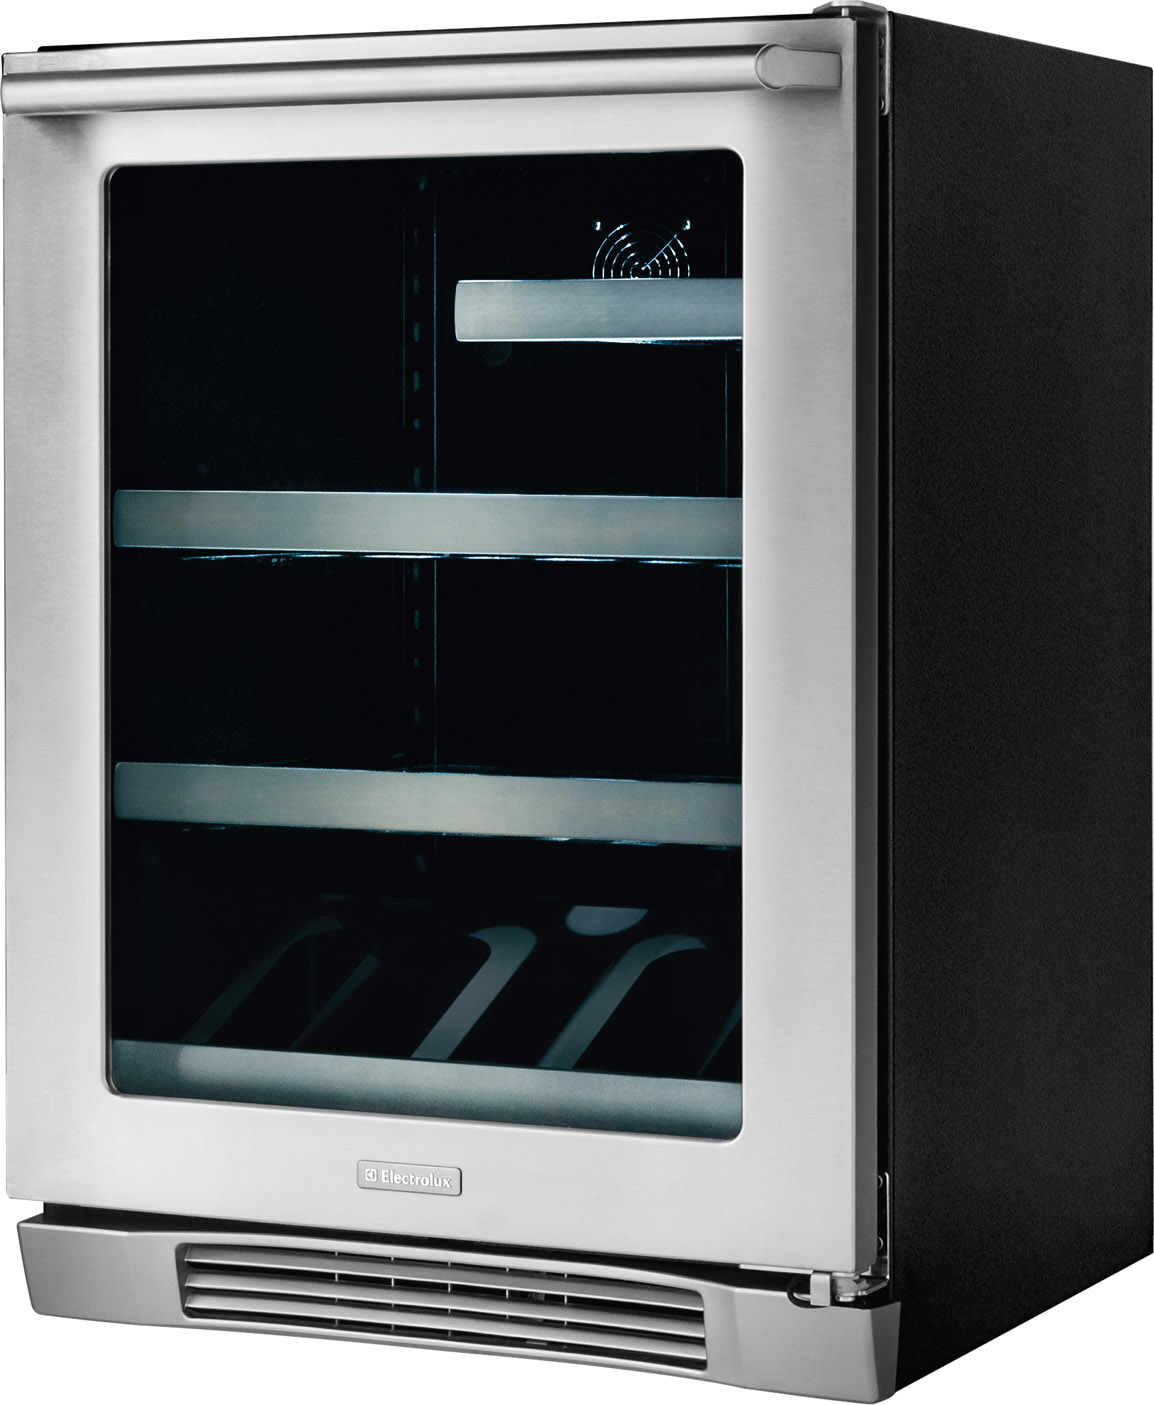 Electrolux 24 Under Counter Beverage Center Stainless Steel Ei24bc10qs Wall Oven Wiring Diagram Features